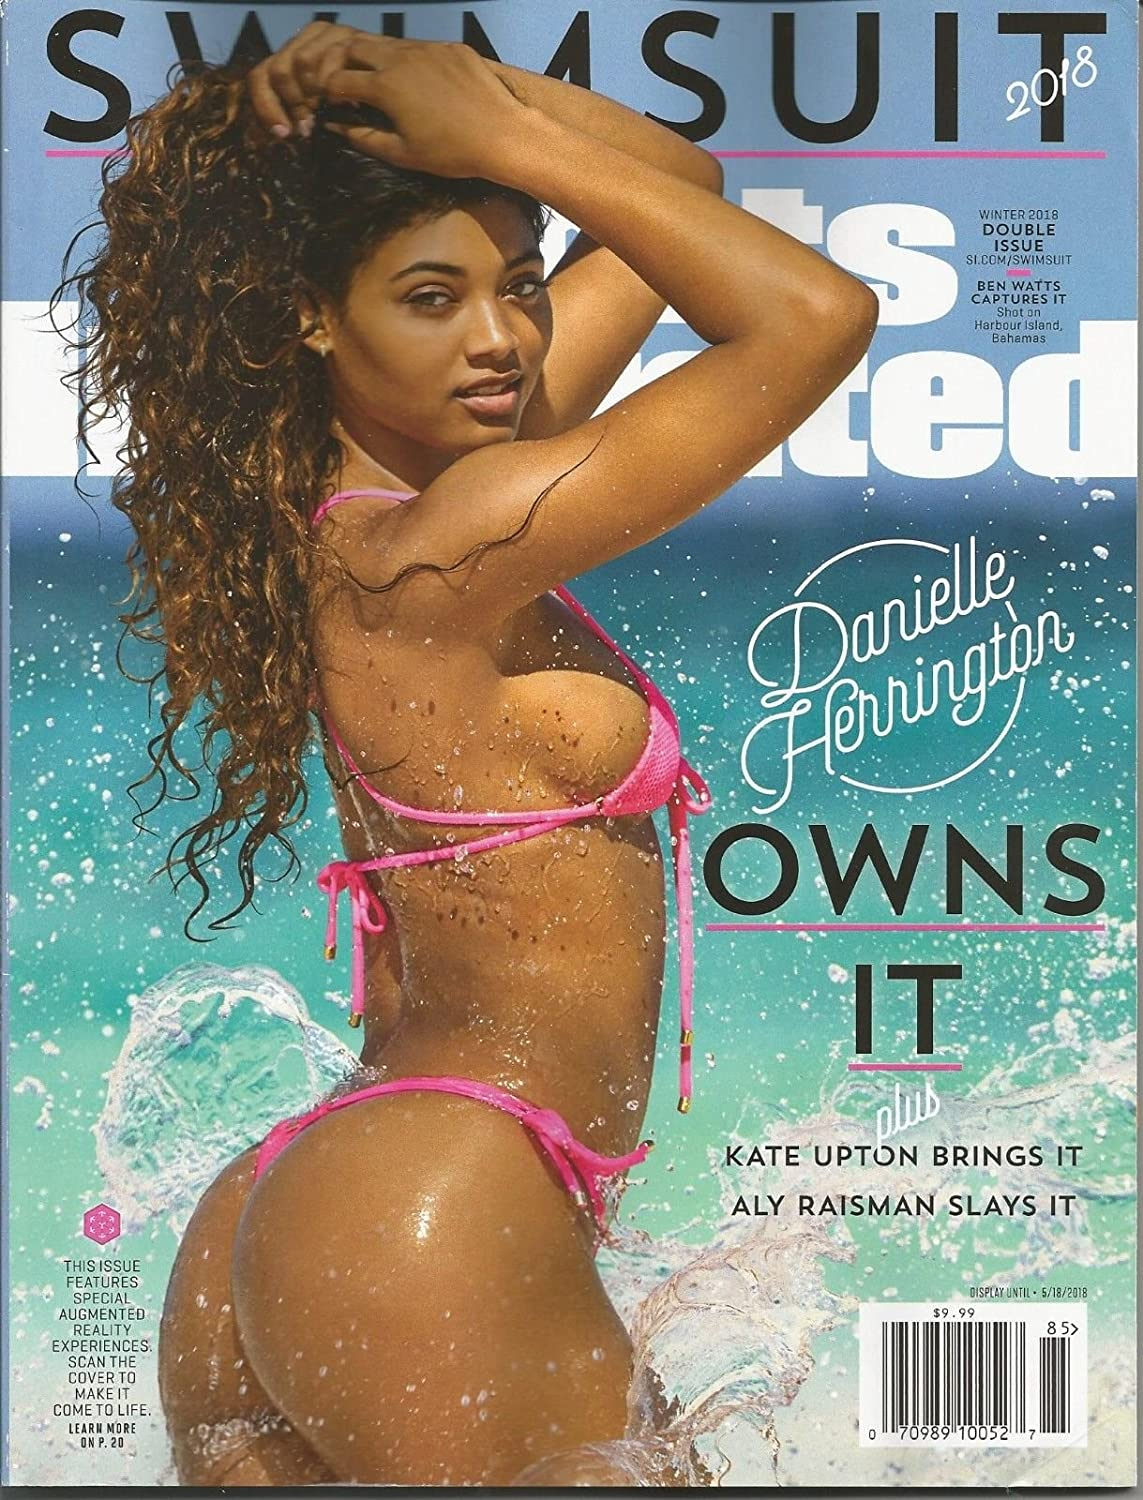 SPORTS ILLUSTRATED MAGAZINE SWIMSUIT DOUBLE ISSUE, WINTER, 2018 s3457